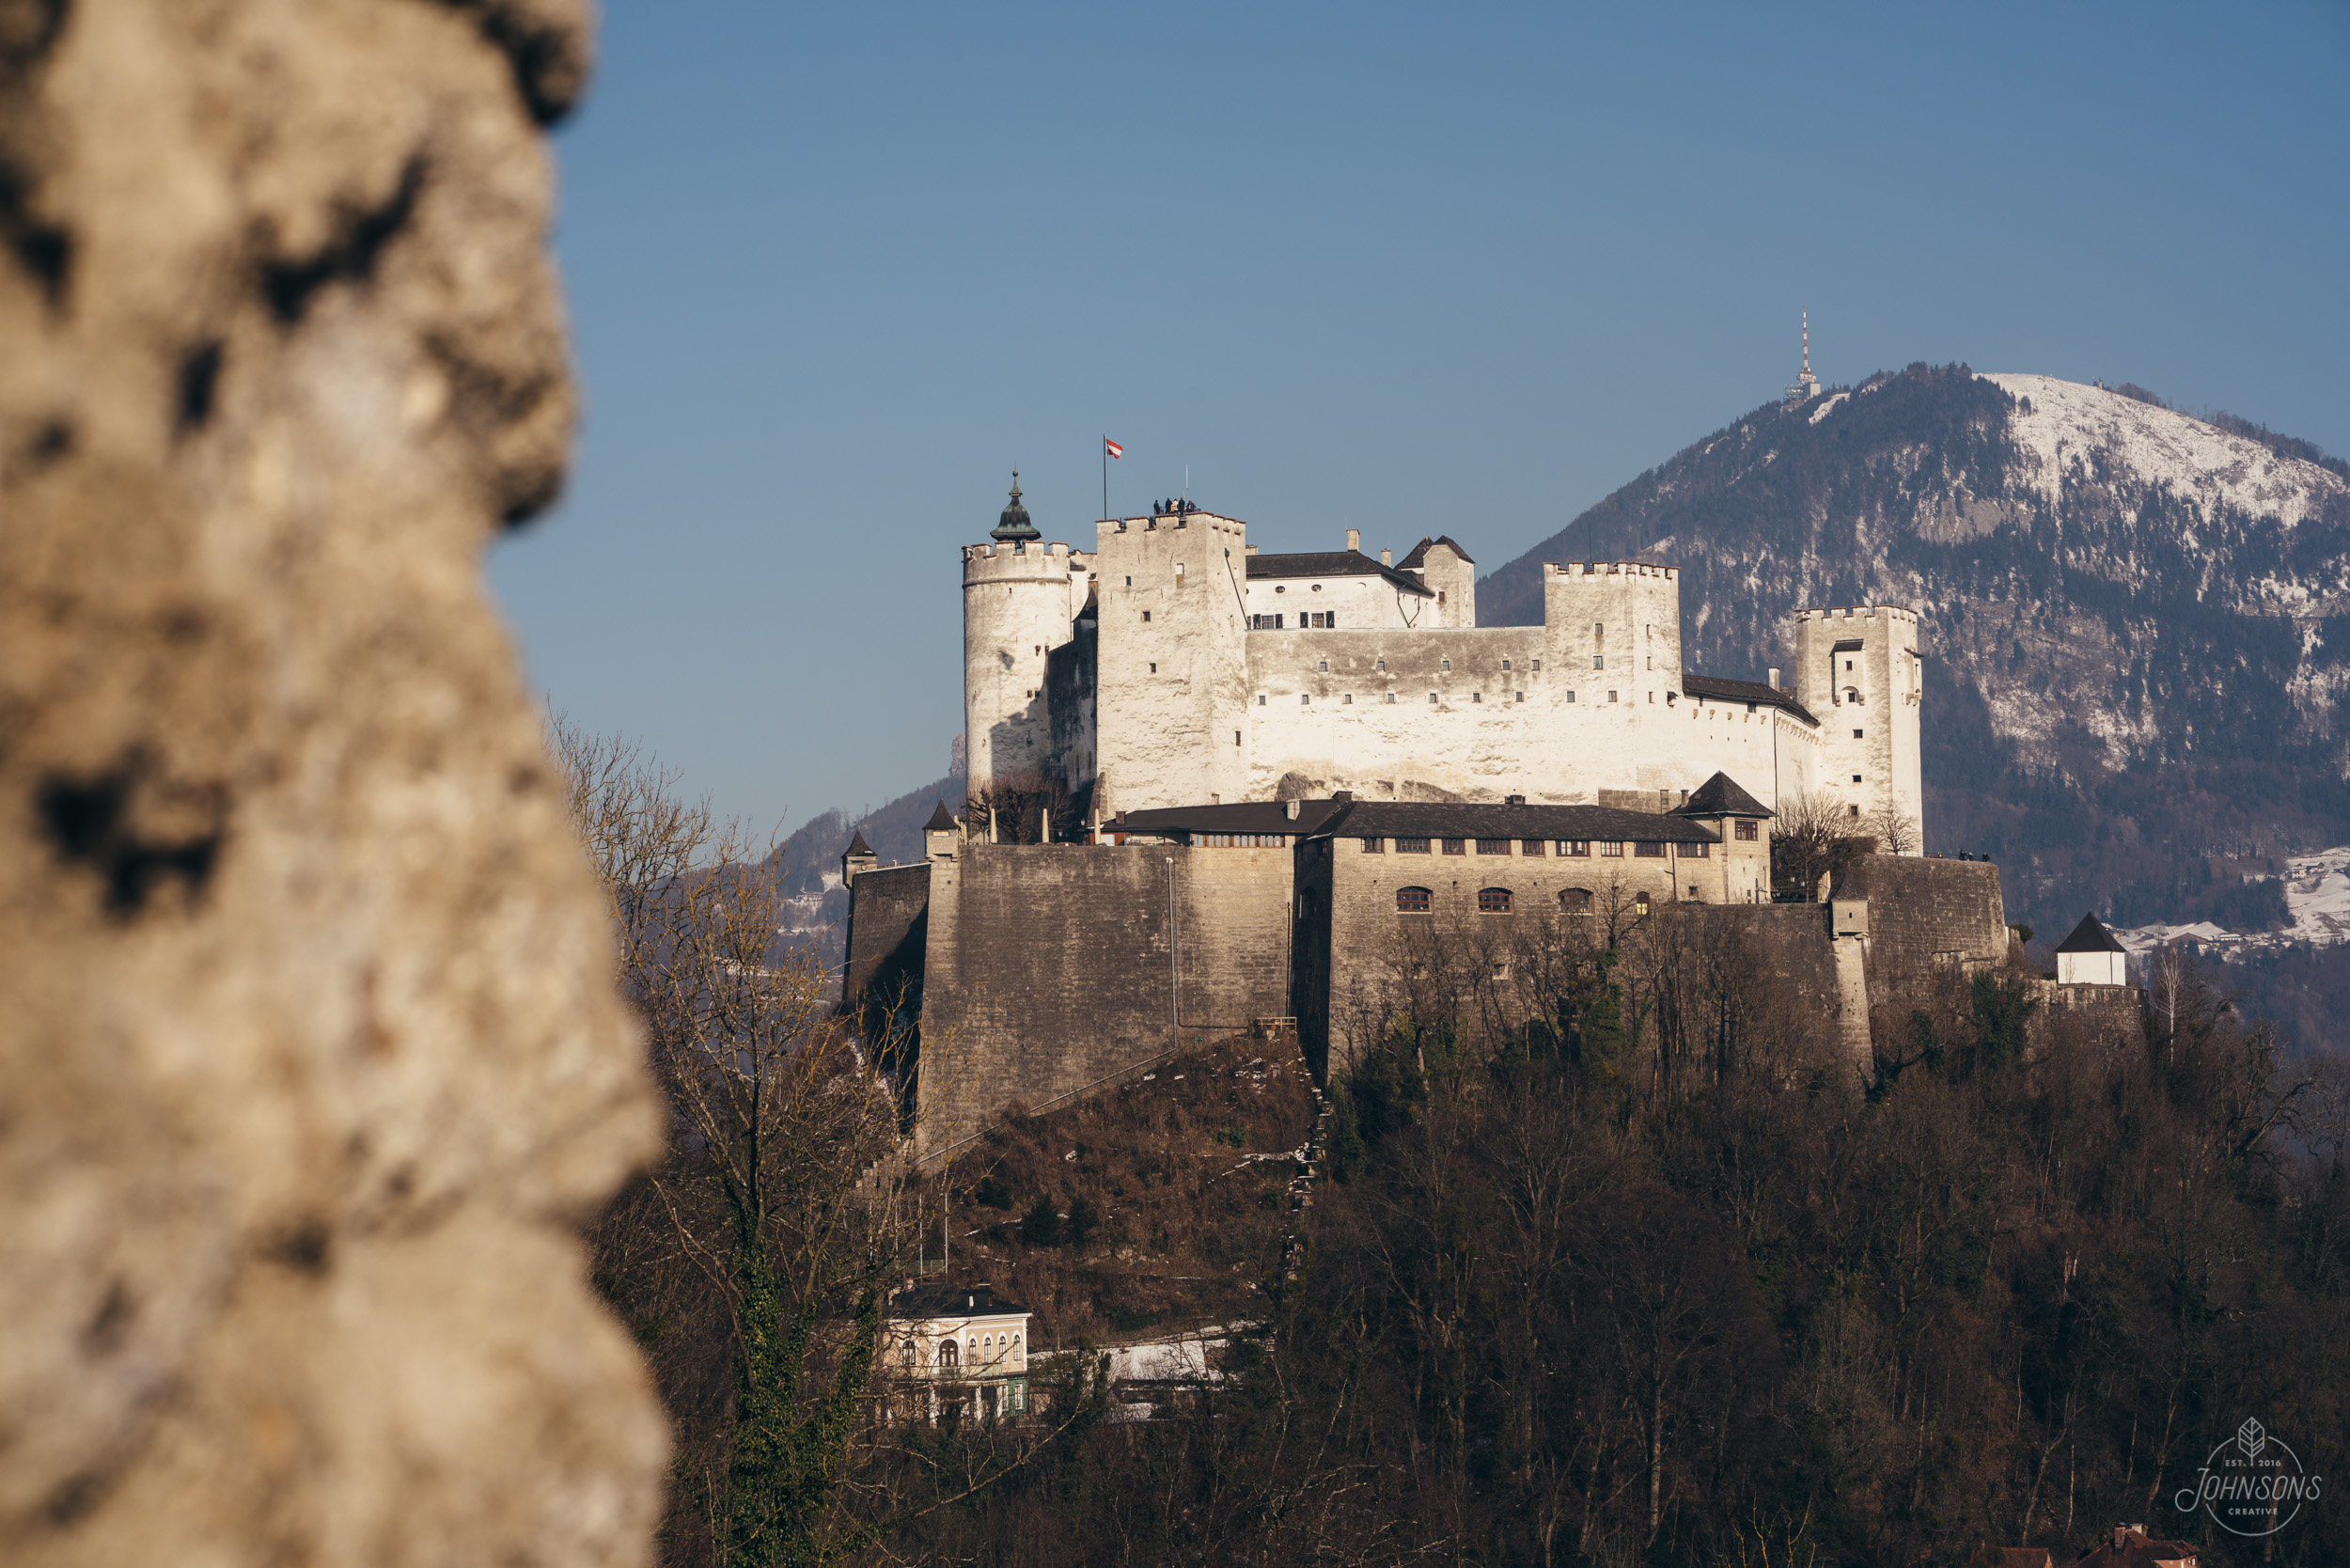 Sony a7rii  85mm 1.8  f10  1/320  ISO 100    This is Hohensalzburg Castle, which is touristy inside but is pretty neat (although overpriced). Photo wise I couldn't find any great compositions, but google images tells me that they are out there...    This was from a lookout spot that seemed pretty popular between the Fortress and the museum.